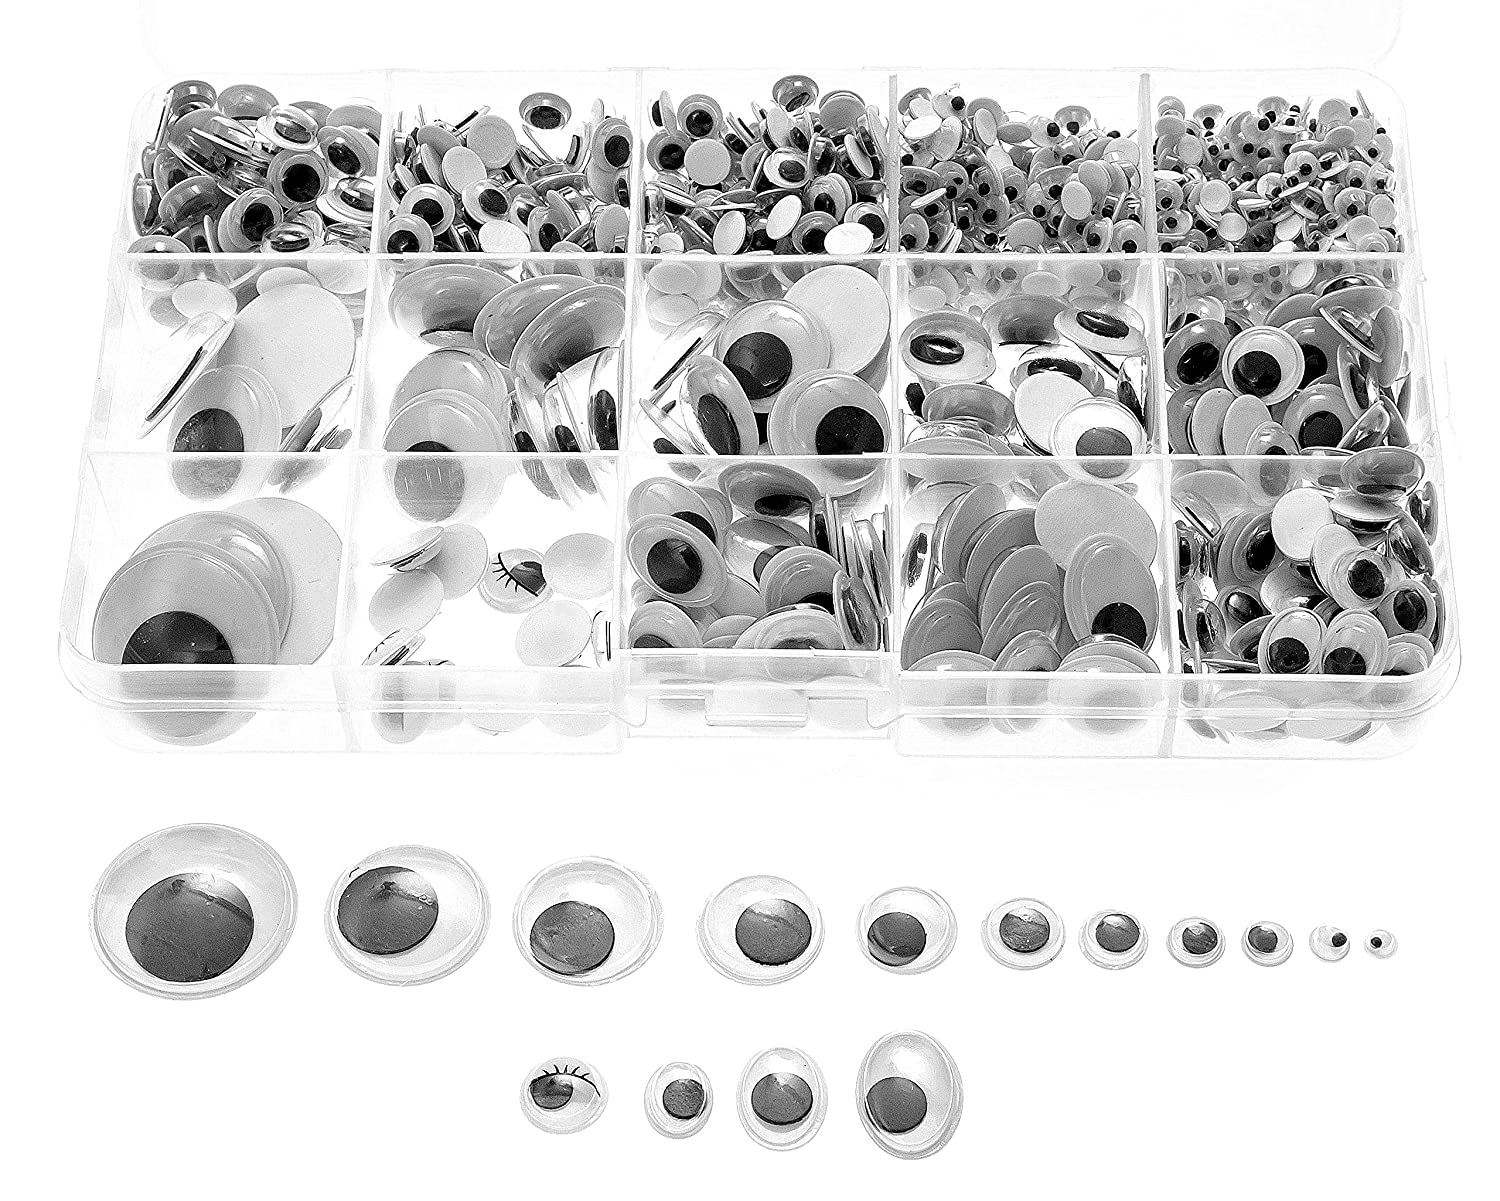 Variety Value Pack SANC 1 box/lot (approx.1120 pcs) 0.16 inches (4mm) to 1 inch (25mm) round Plastic self-adhesive black googly wiggle eyes Wide Variety Assorted Sizes Sorrento Crafts